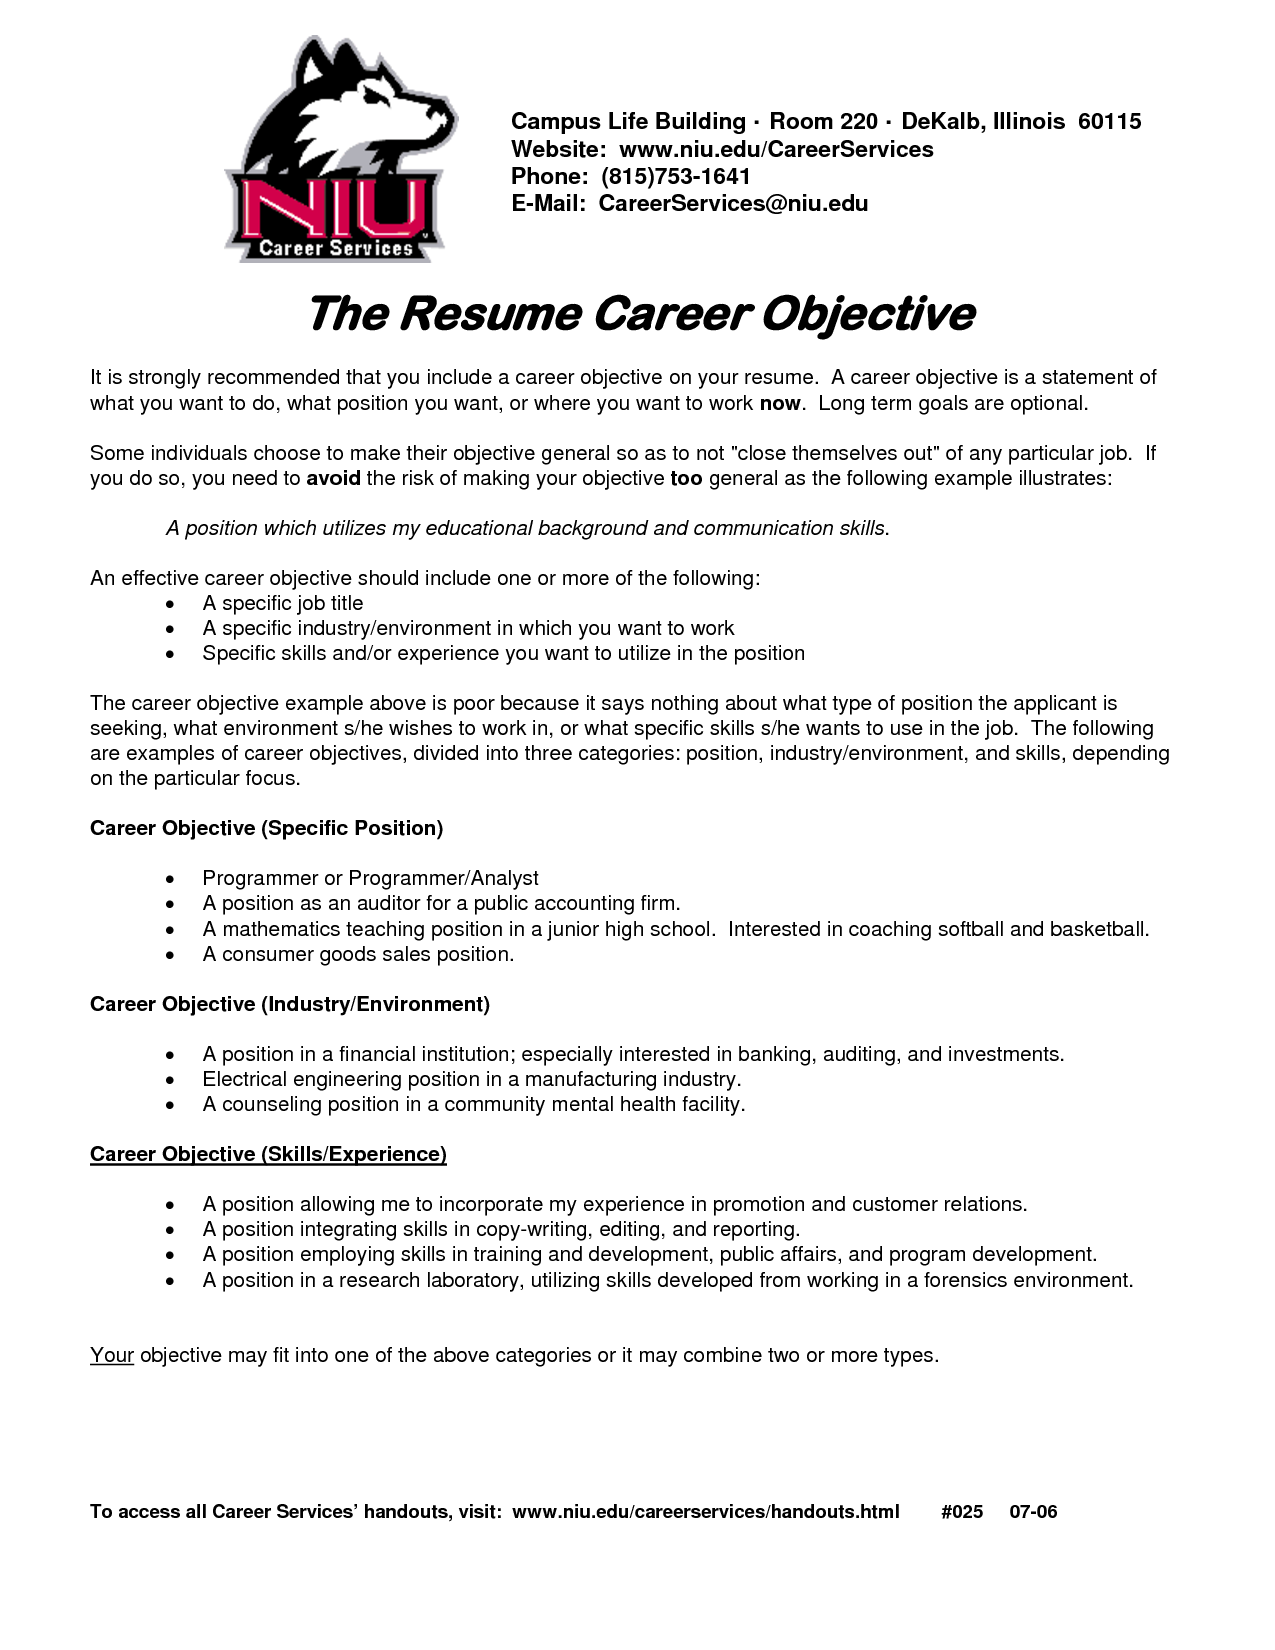 A Good Objective For Resume Httpswwwgooglesearchqobjective Resume  Resume